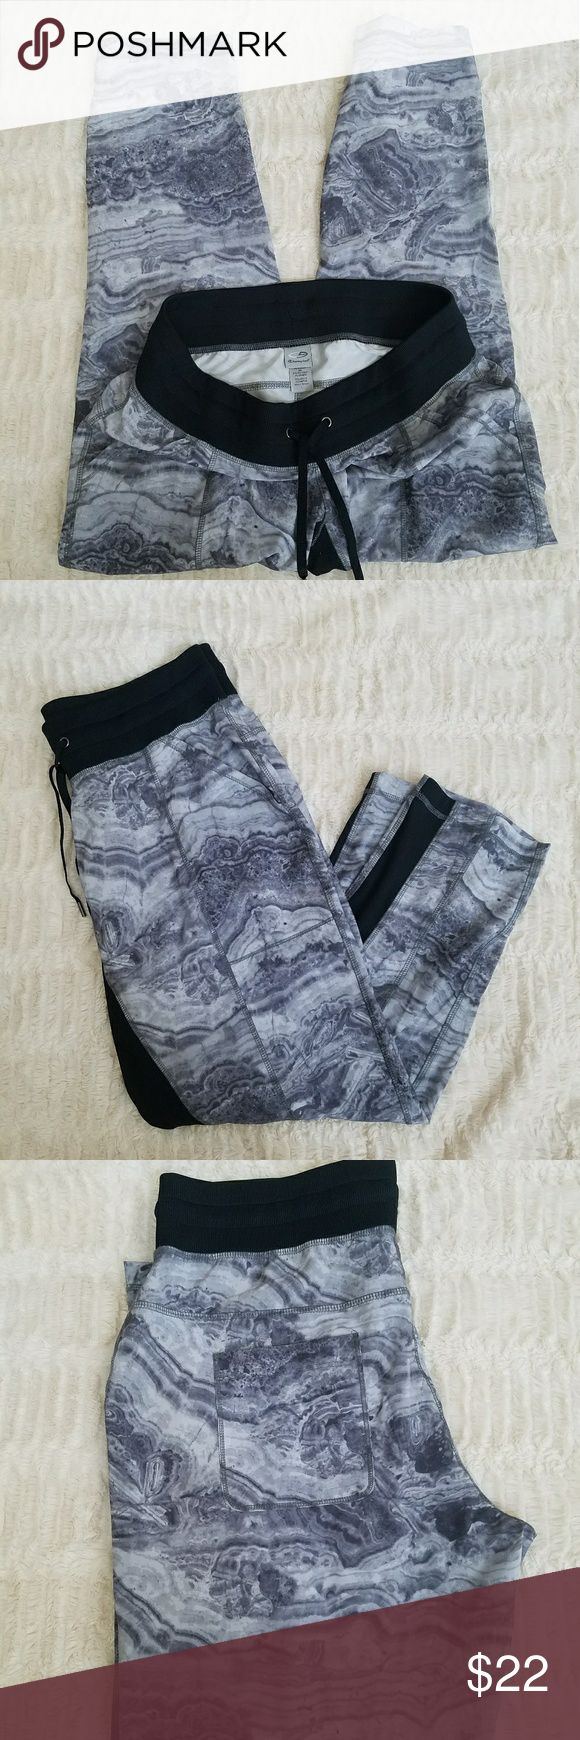 SALE-New champion marbel work out pants New without tags - never worn. Marbel print Champion Pants